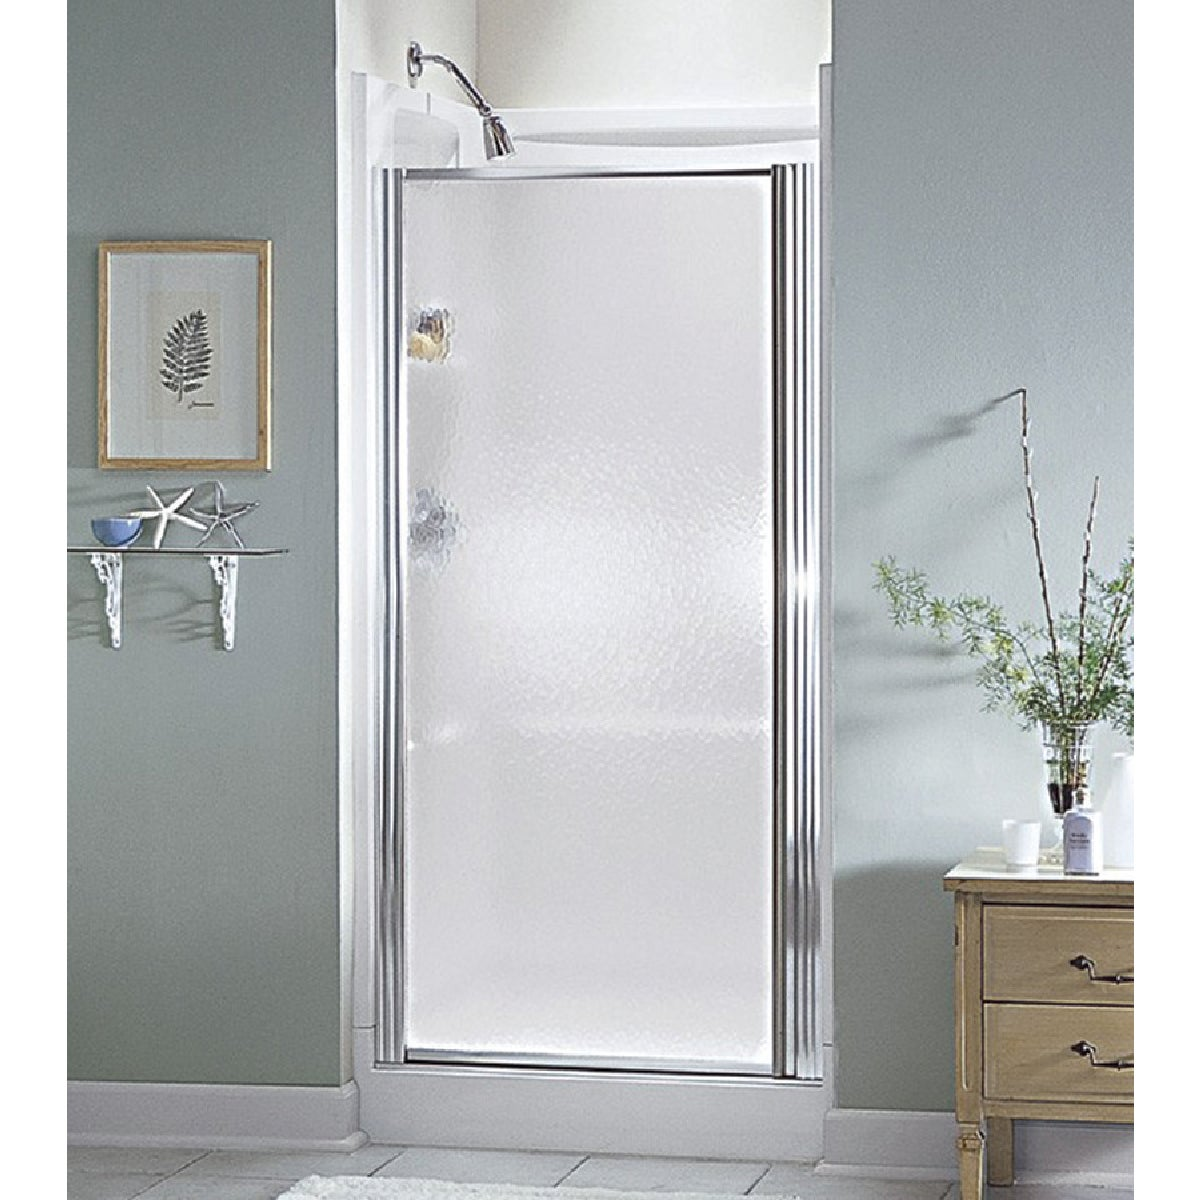 27-28-1/2 PIVOT SHW DR - 950C-28S by Sterling Doors